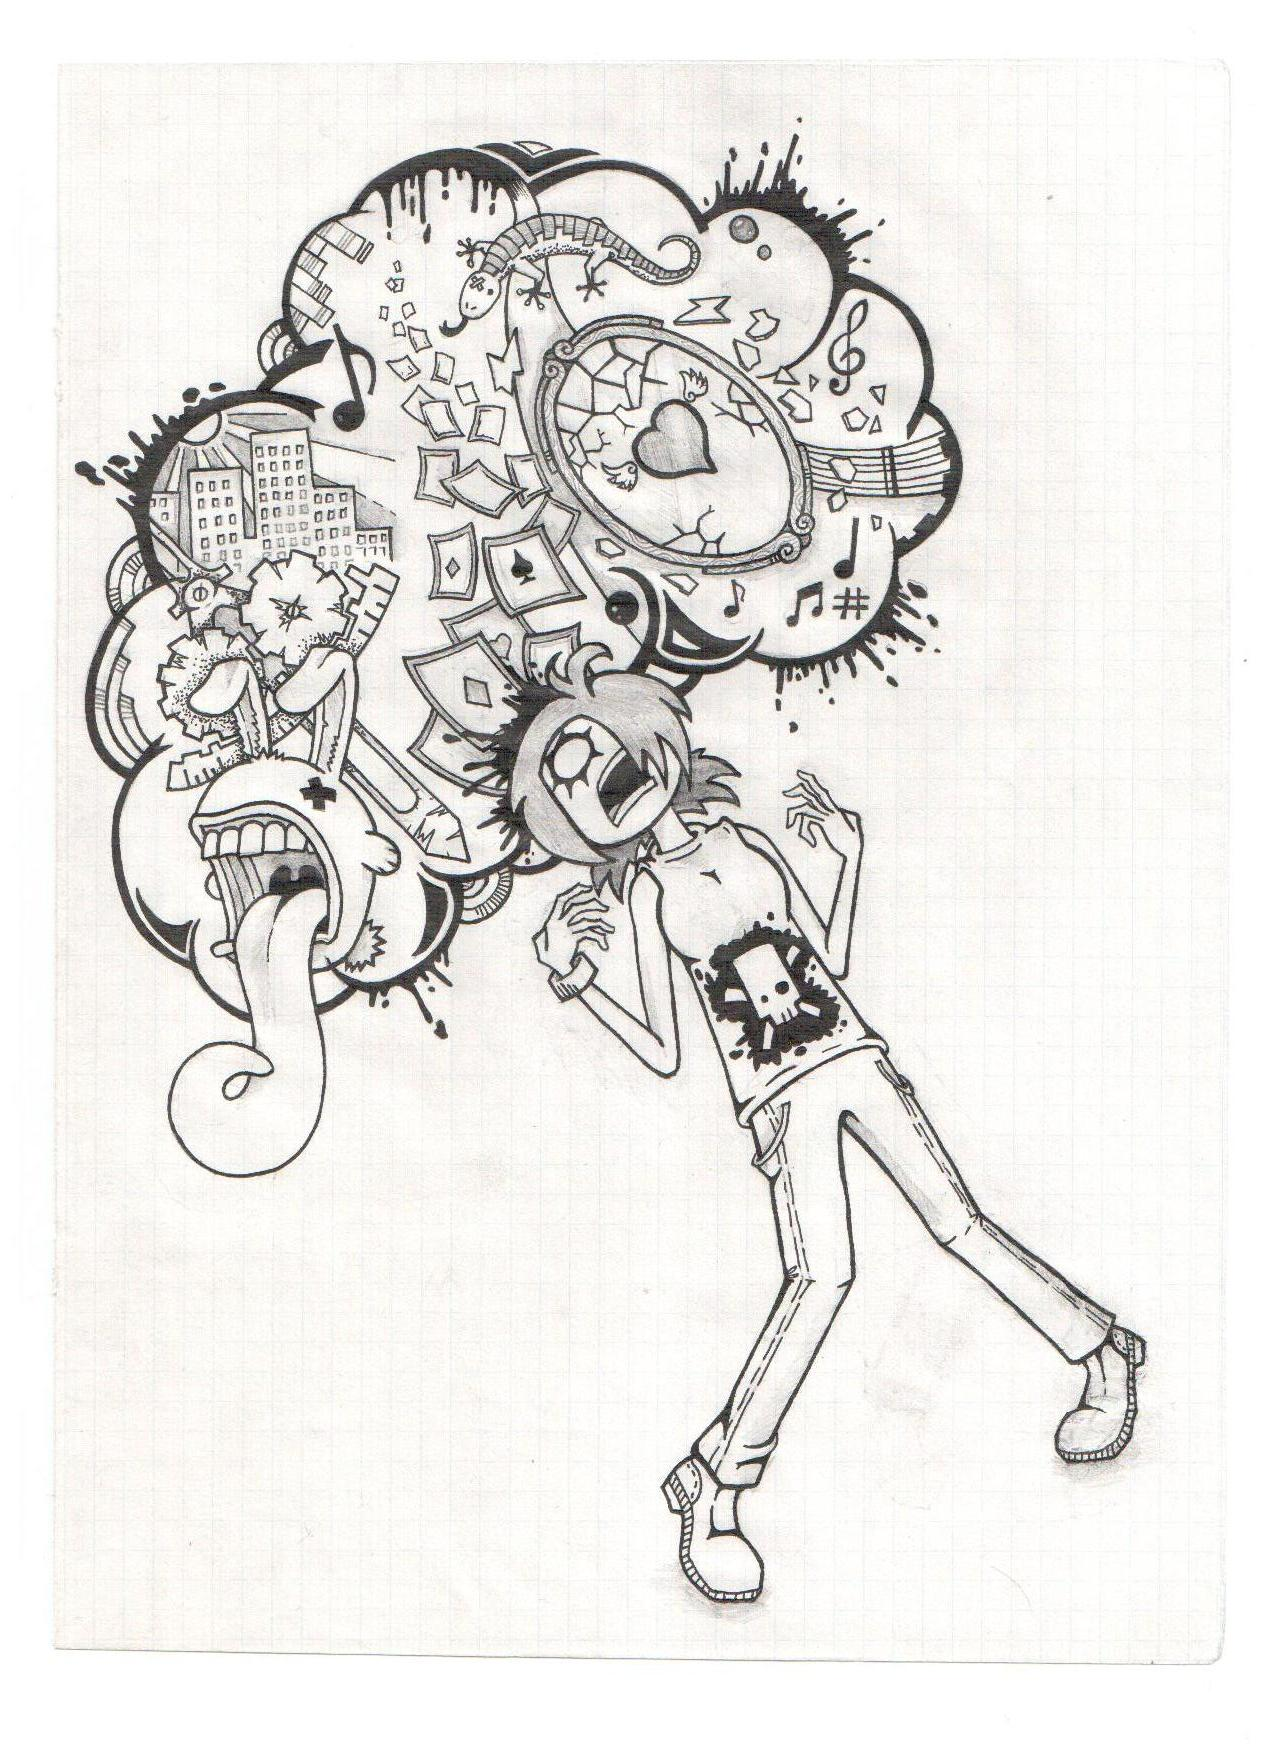 1275x1755 Collection Of Mind Explosion Drawing High Quality, Free